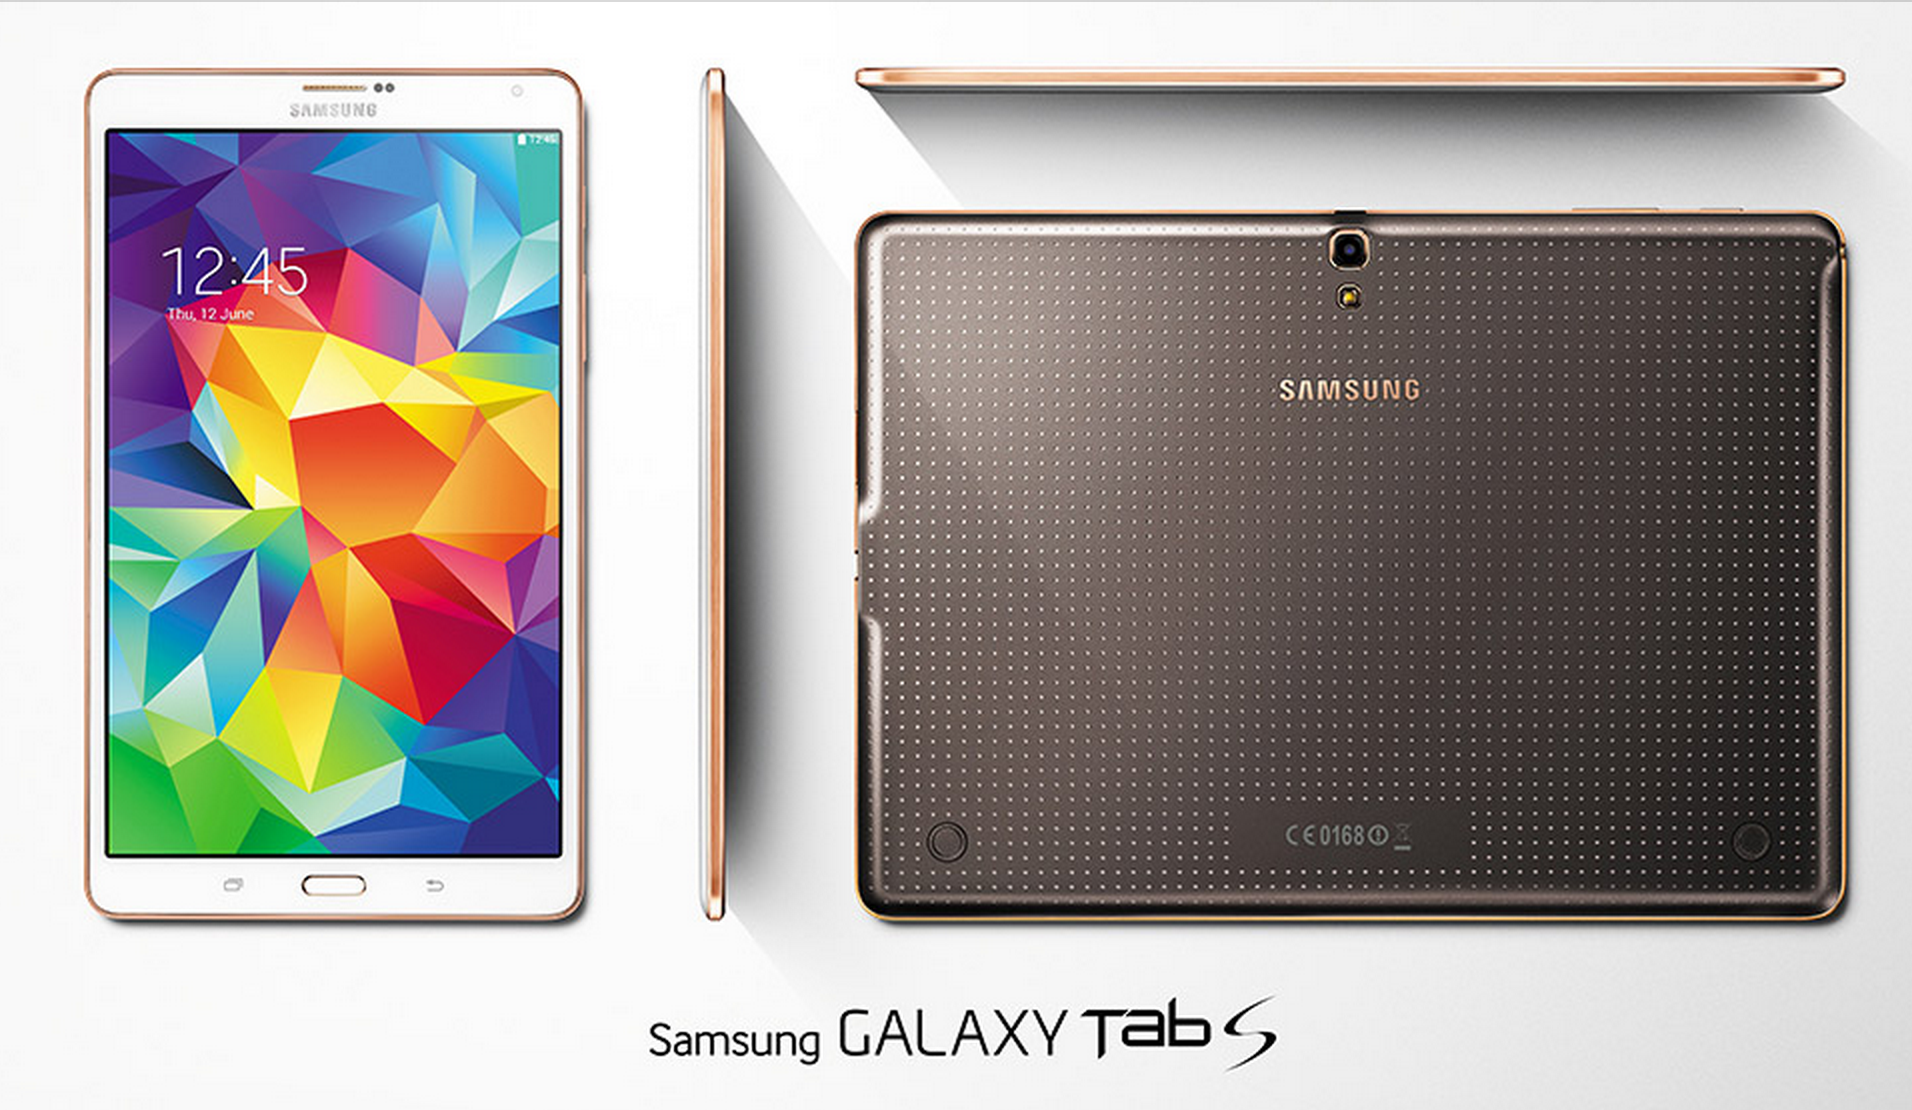 http://cdn1.tnwcdn.com/wp-content/blogs.dir/1/files/2014/06/galaxy-tab-S.png